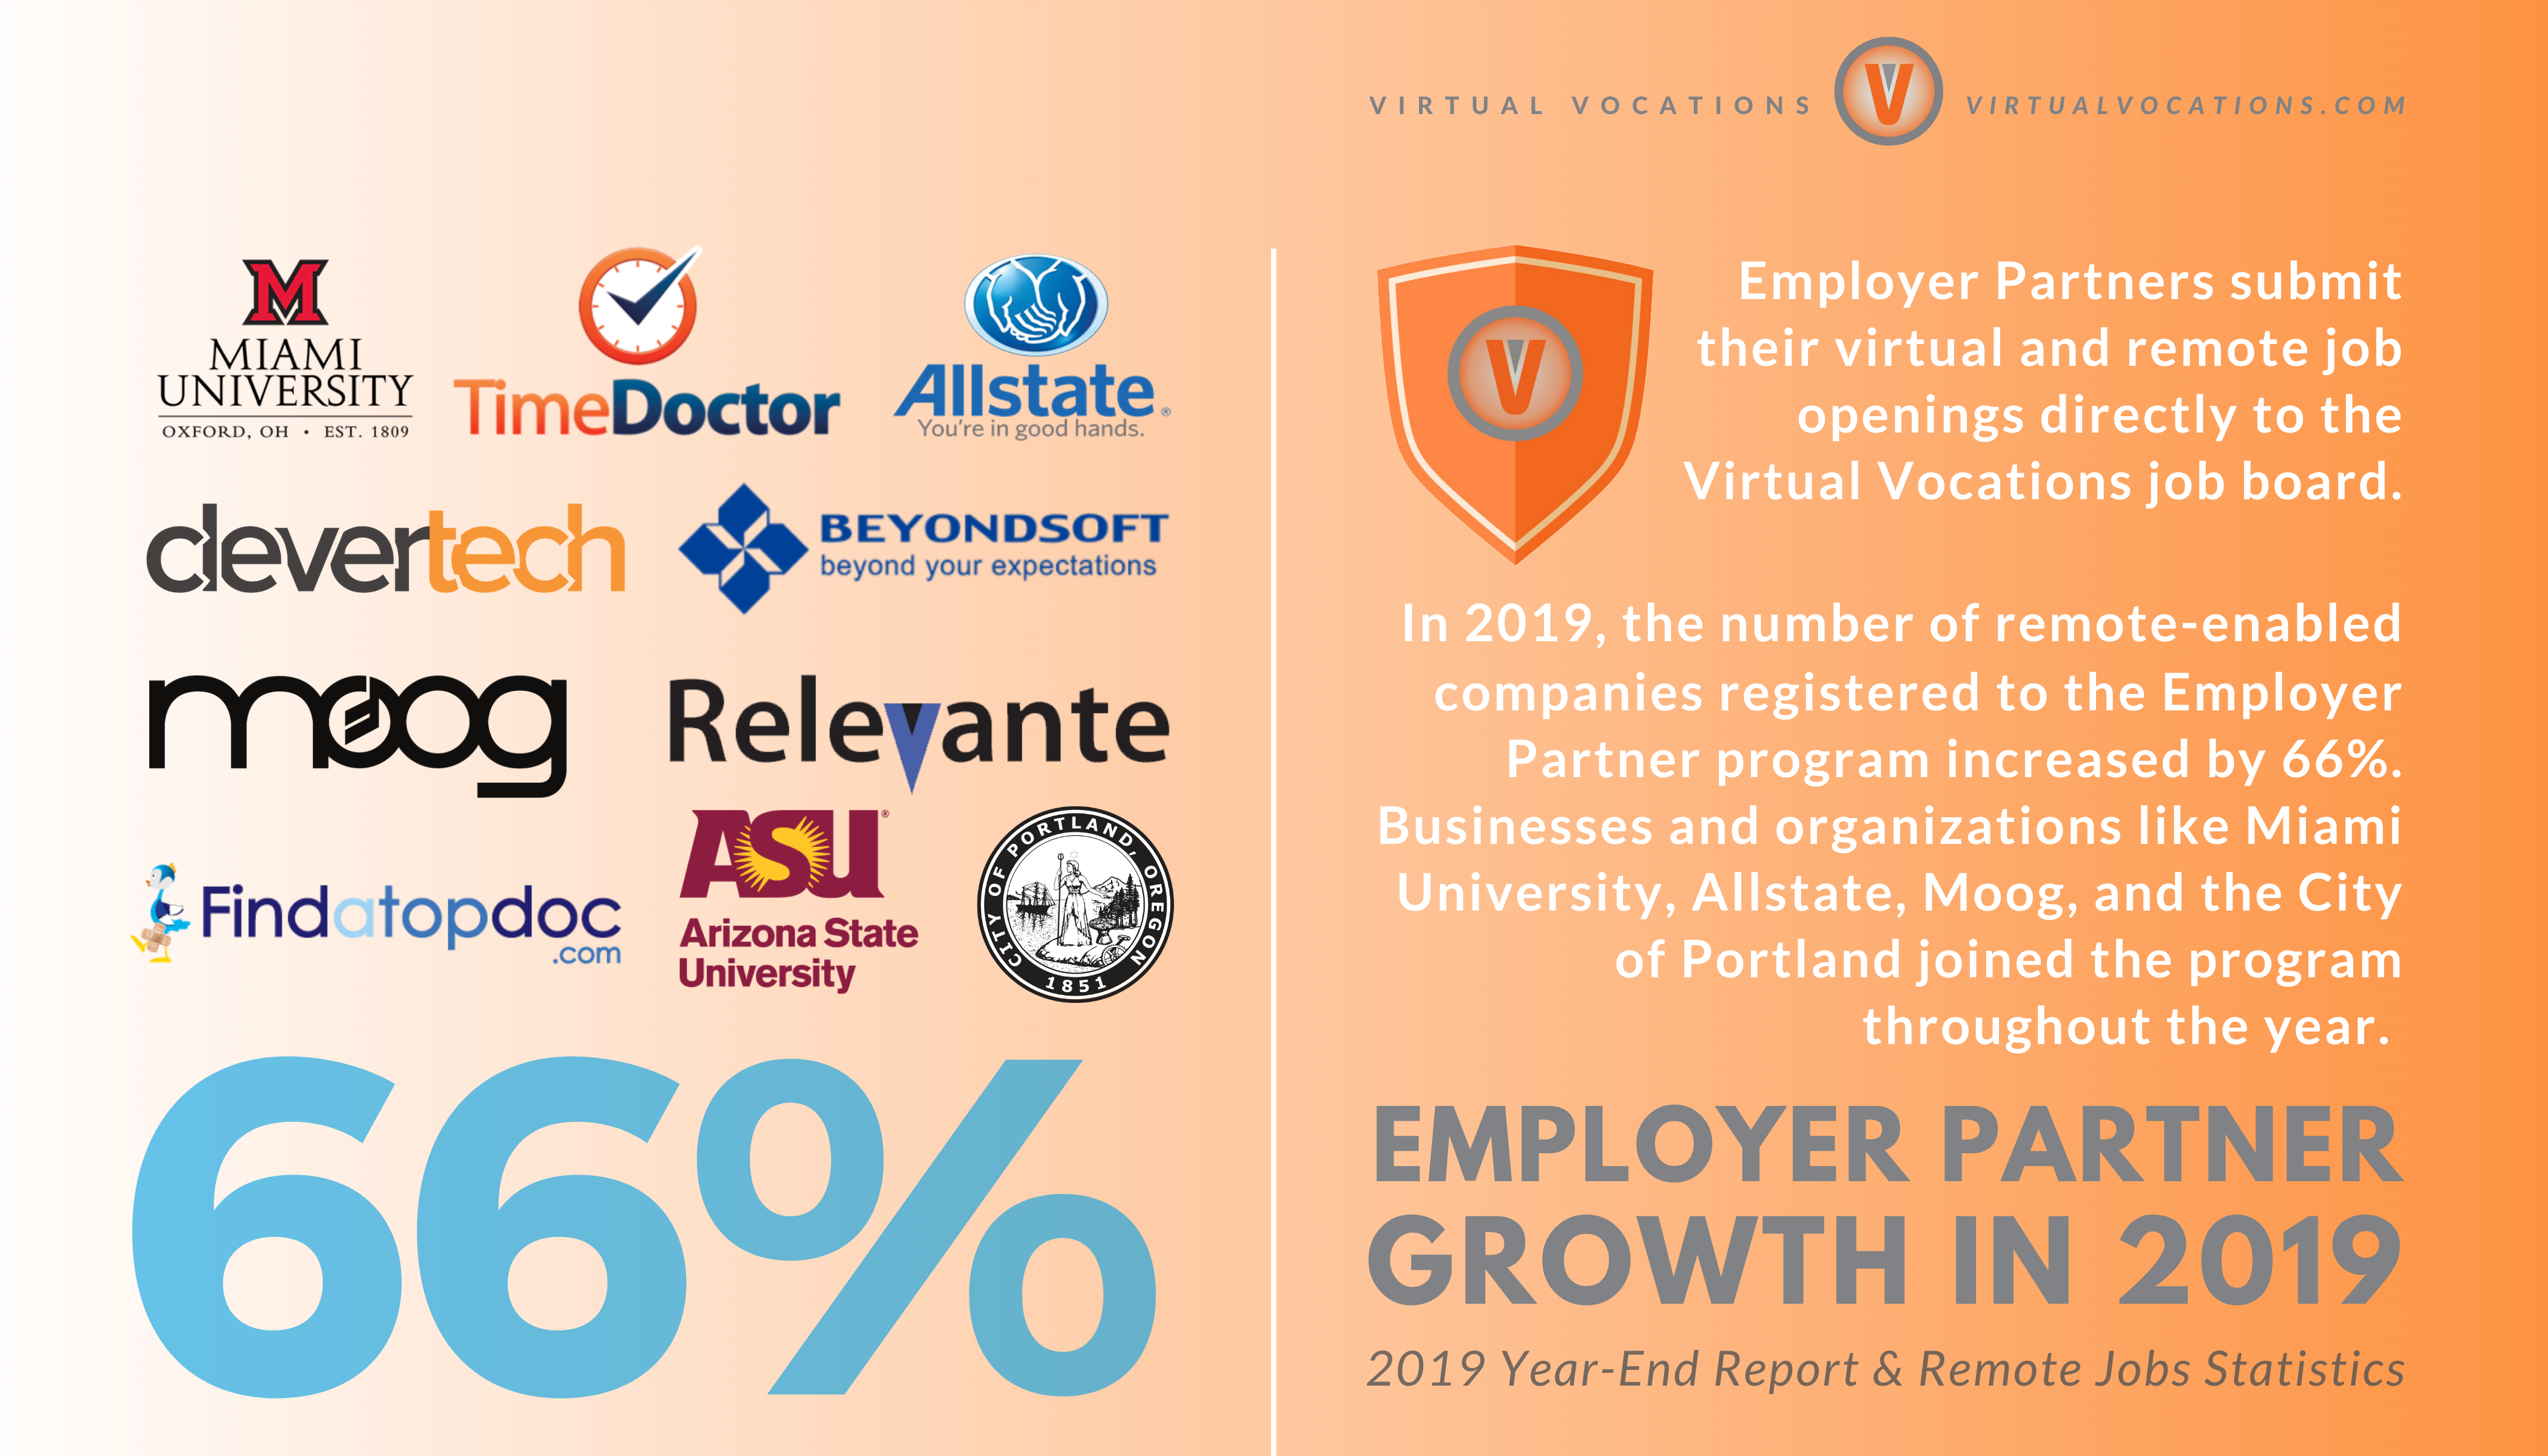 Virtual Vocations 2019 Employer Partner Growth - 2019 Year-End Report and Remote Jobs Statistics